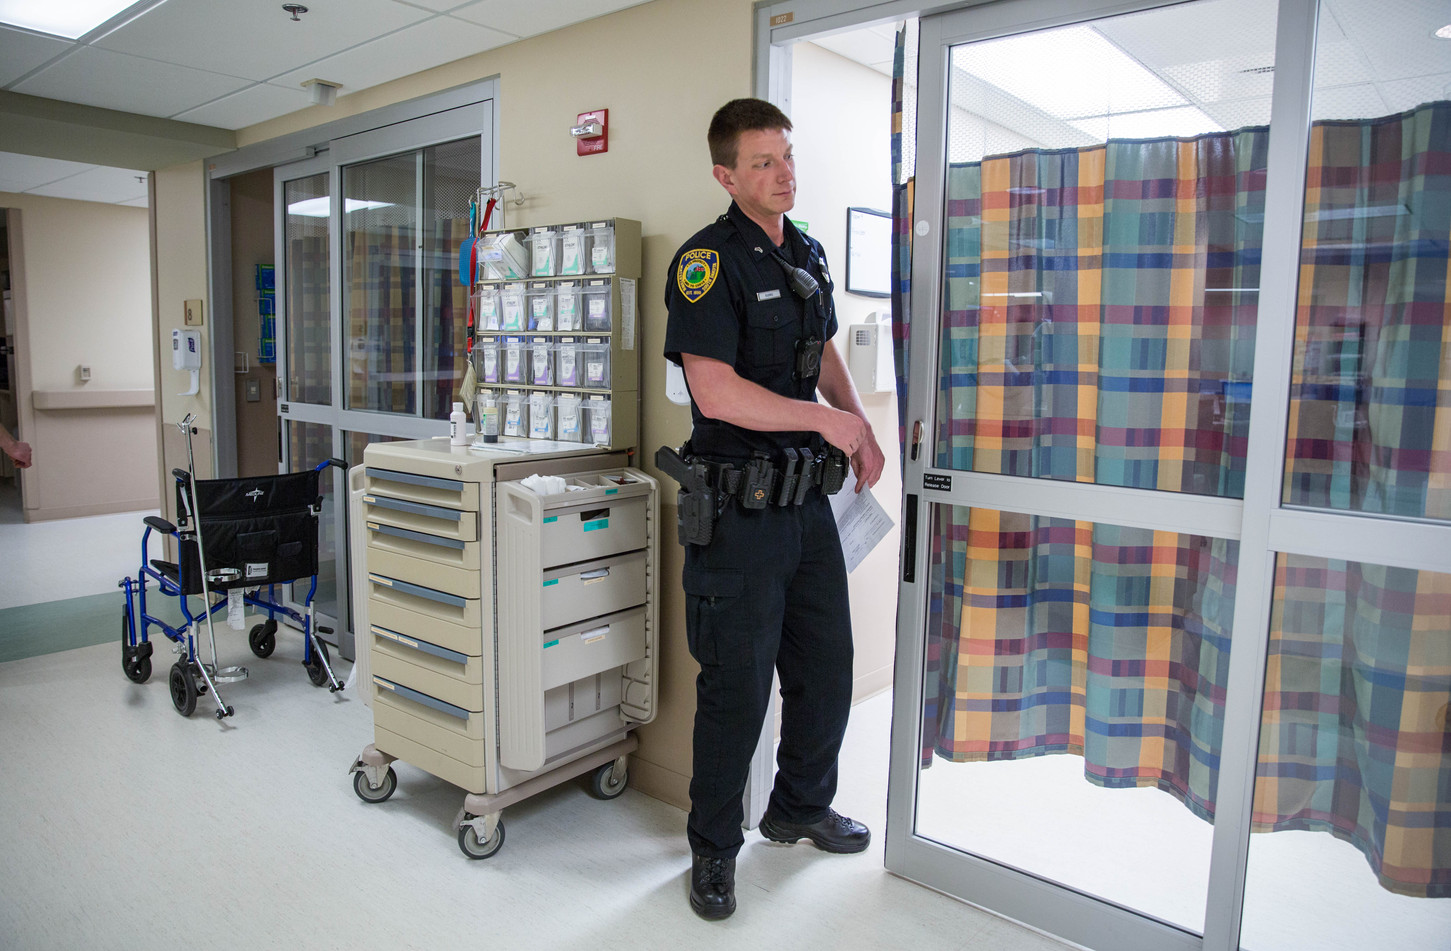 Corporal Jeremy Bjerke checks on a man the WPD and WFR brought in to Prairie Lakes Hospital Monday for making threats to himself and others on May 14, 2018. The man was later transported to Serenity Hills Halfway House, a care facility in Watertown for those suffering from mental illness and/or addictions. ©2018 Grace Ramey